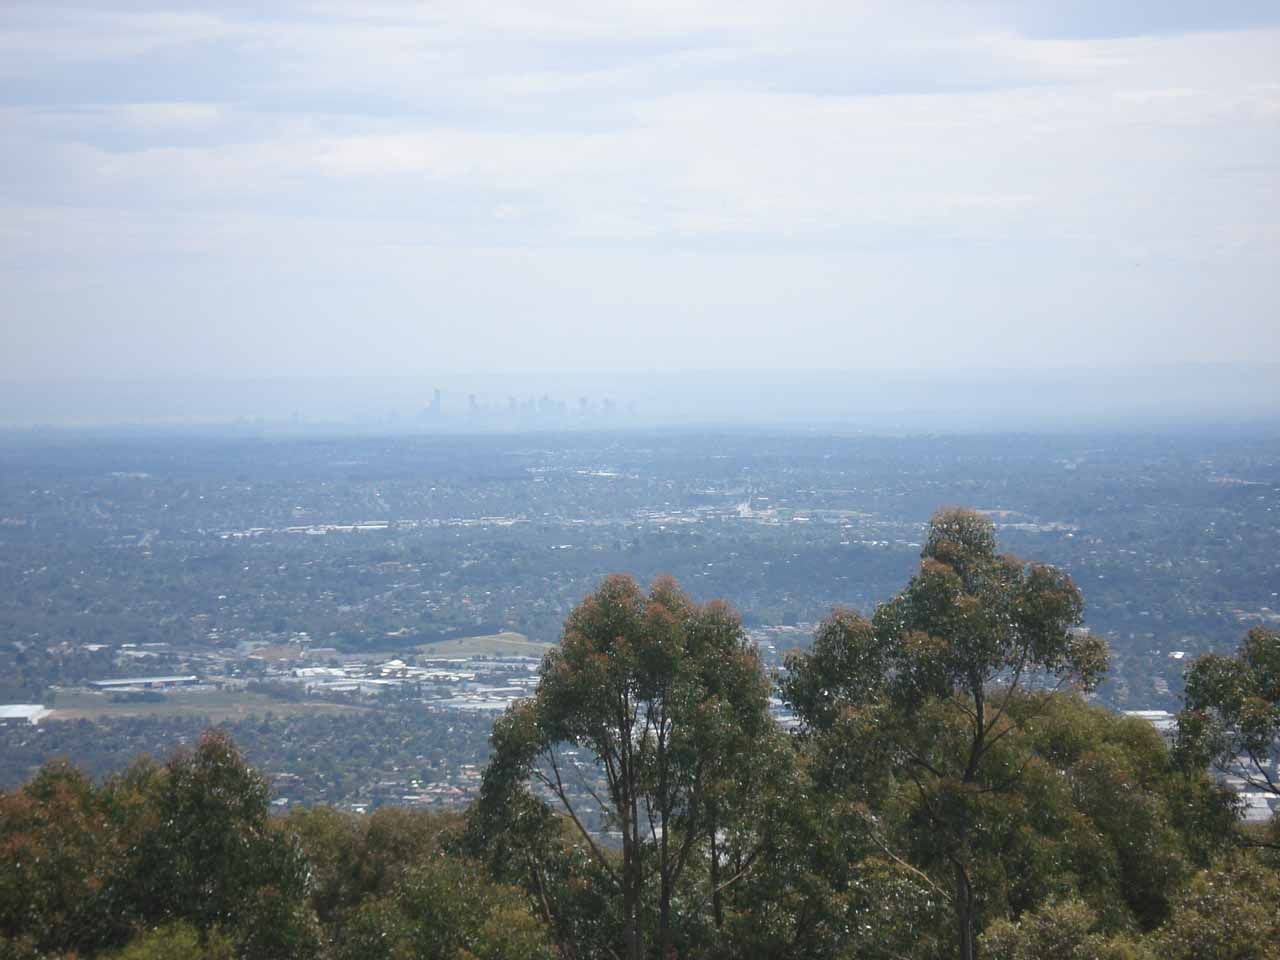 On the northeastern outskirts of the city of Melbourne, my cousins took us up to Mt Dandenong, which afforded us this distant view back towards the Melbourne CBD